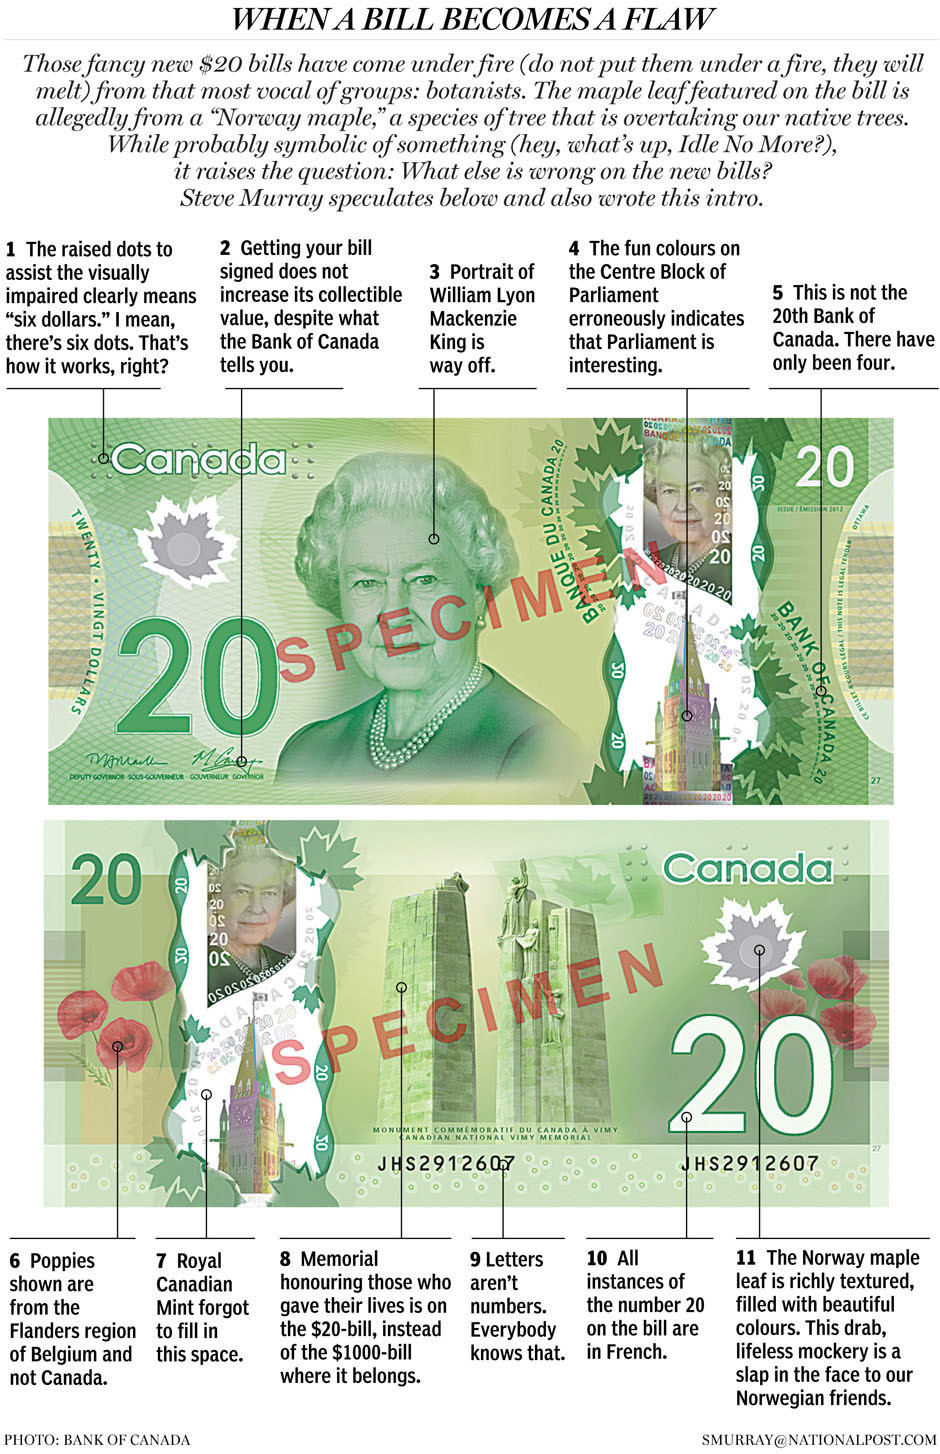 "Canada's flawed bill: Our $20 bill depicts a non-native maple species. What else is wrong with it?When it unveiled its new paperless, plasticized $20 bills in May 2012, the Bank of Canada touted its high-tech anti-counterfeiting technology. ""This new $20 note fits the bill,"" they said. Ha ha! Nice pun. Too bad they didn't mention that little problem with them melting. There have been other complaints too. The Post's Steve Murray investigates."